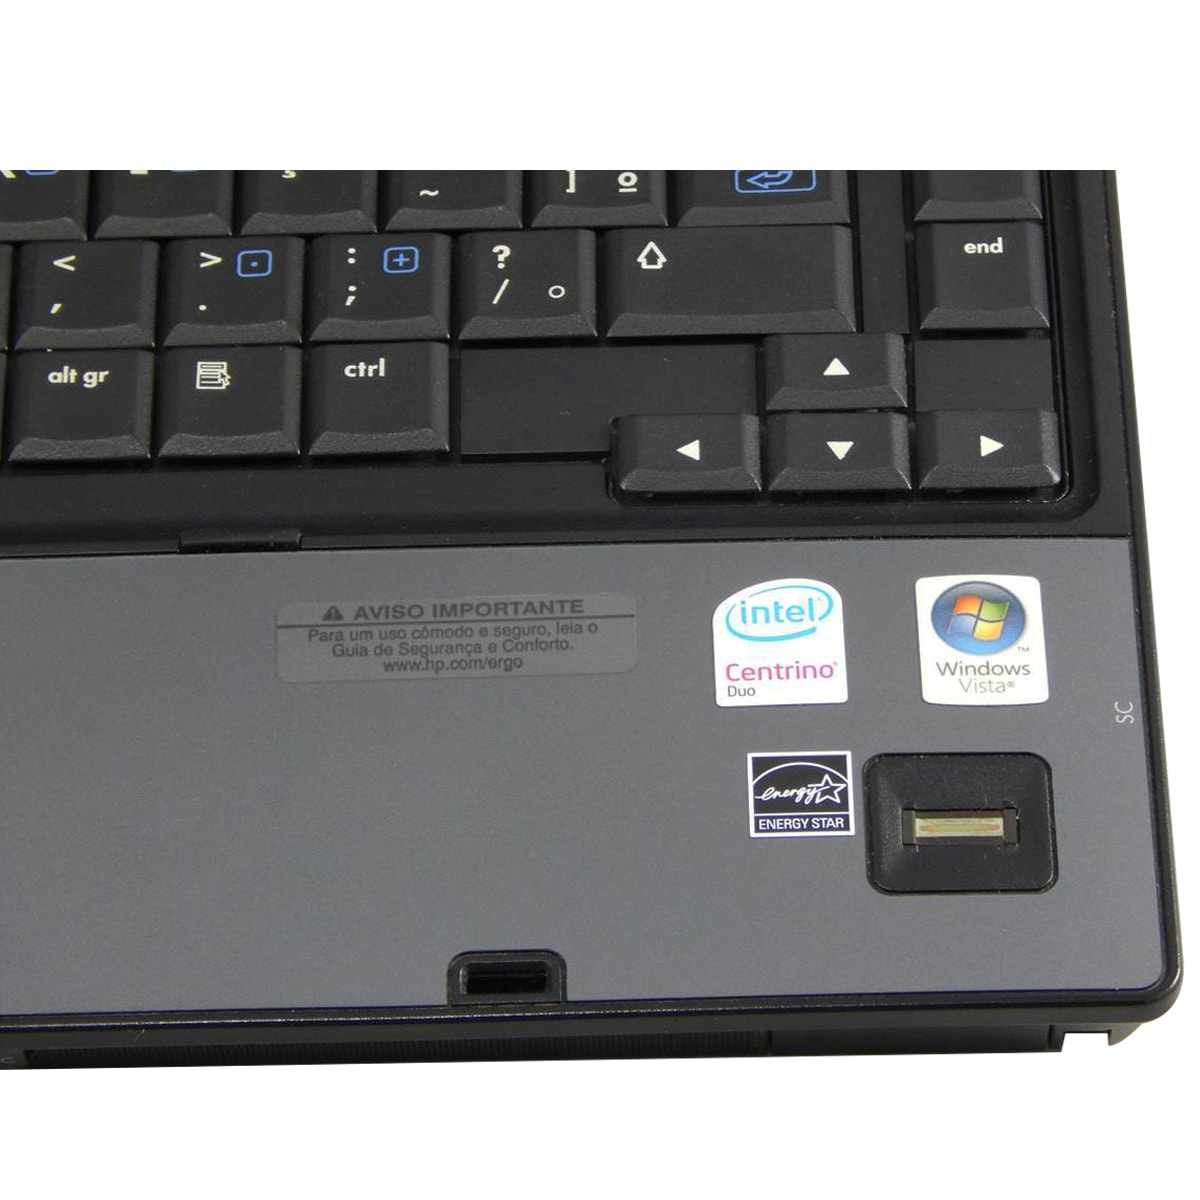 "Notebook HP Compaq 6910p C2D T7500 2gb 160gb 14"" - Usado"